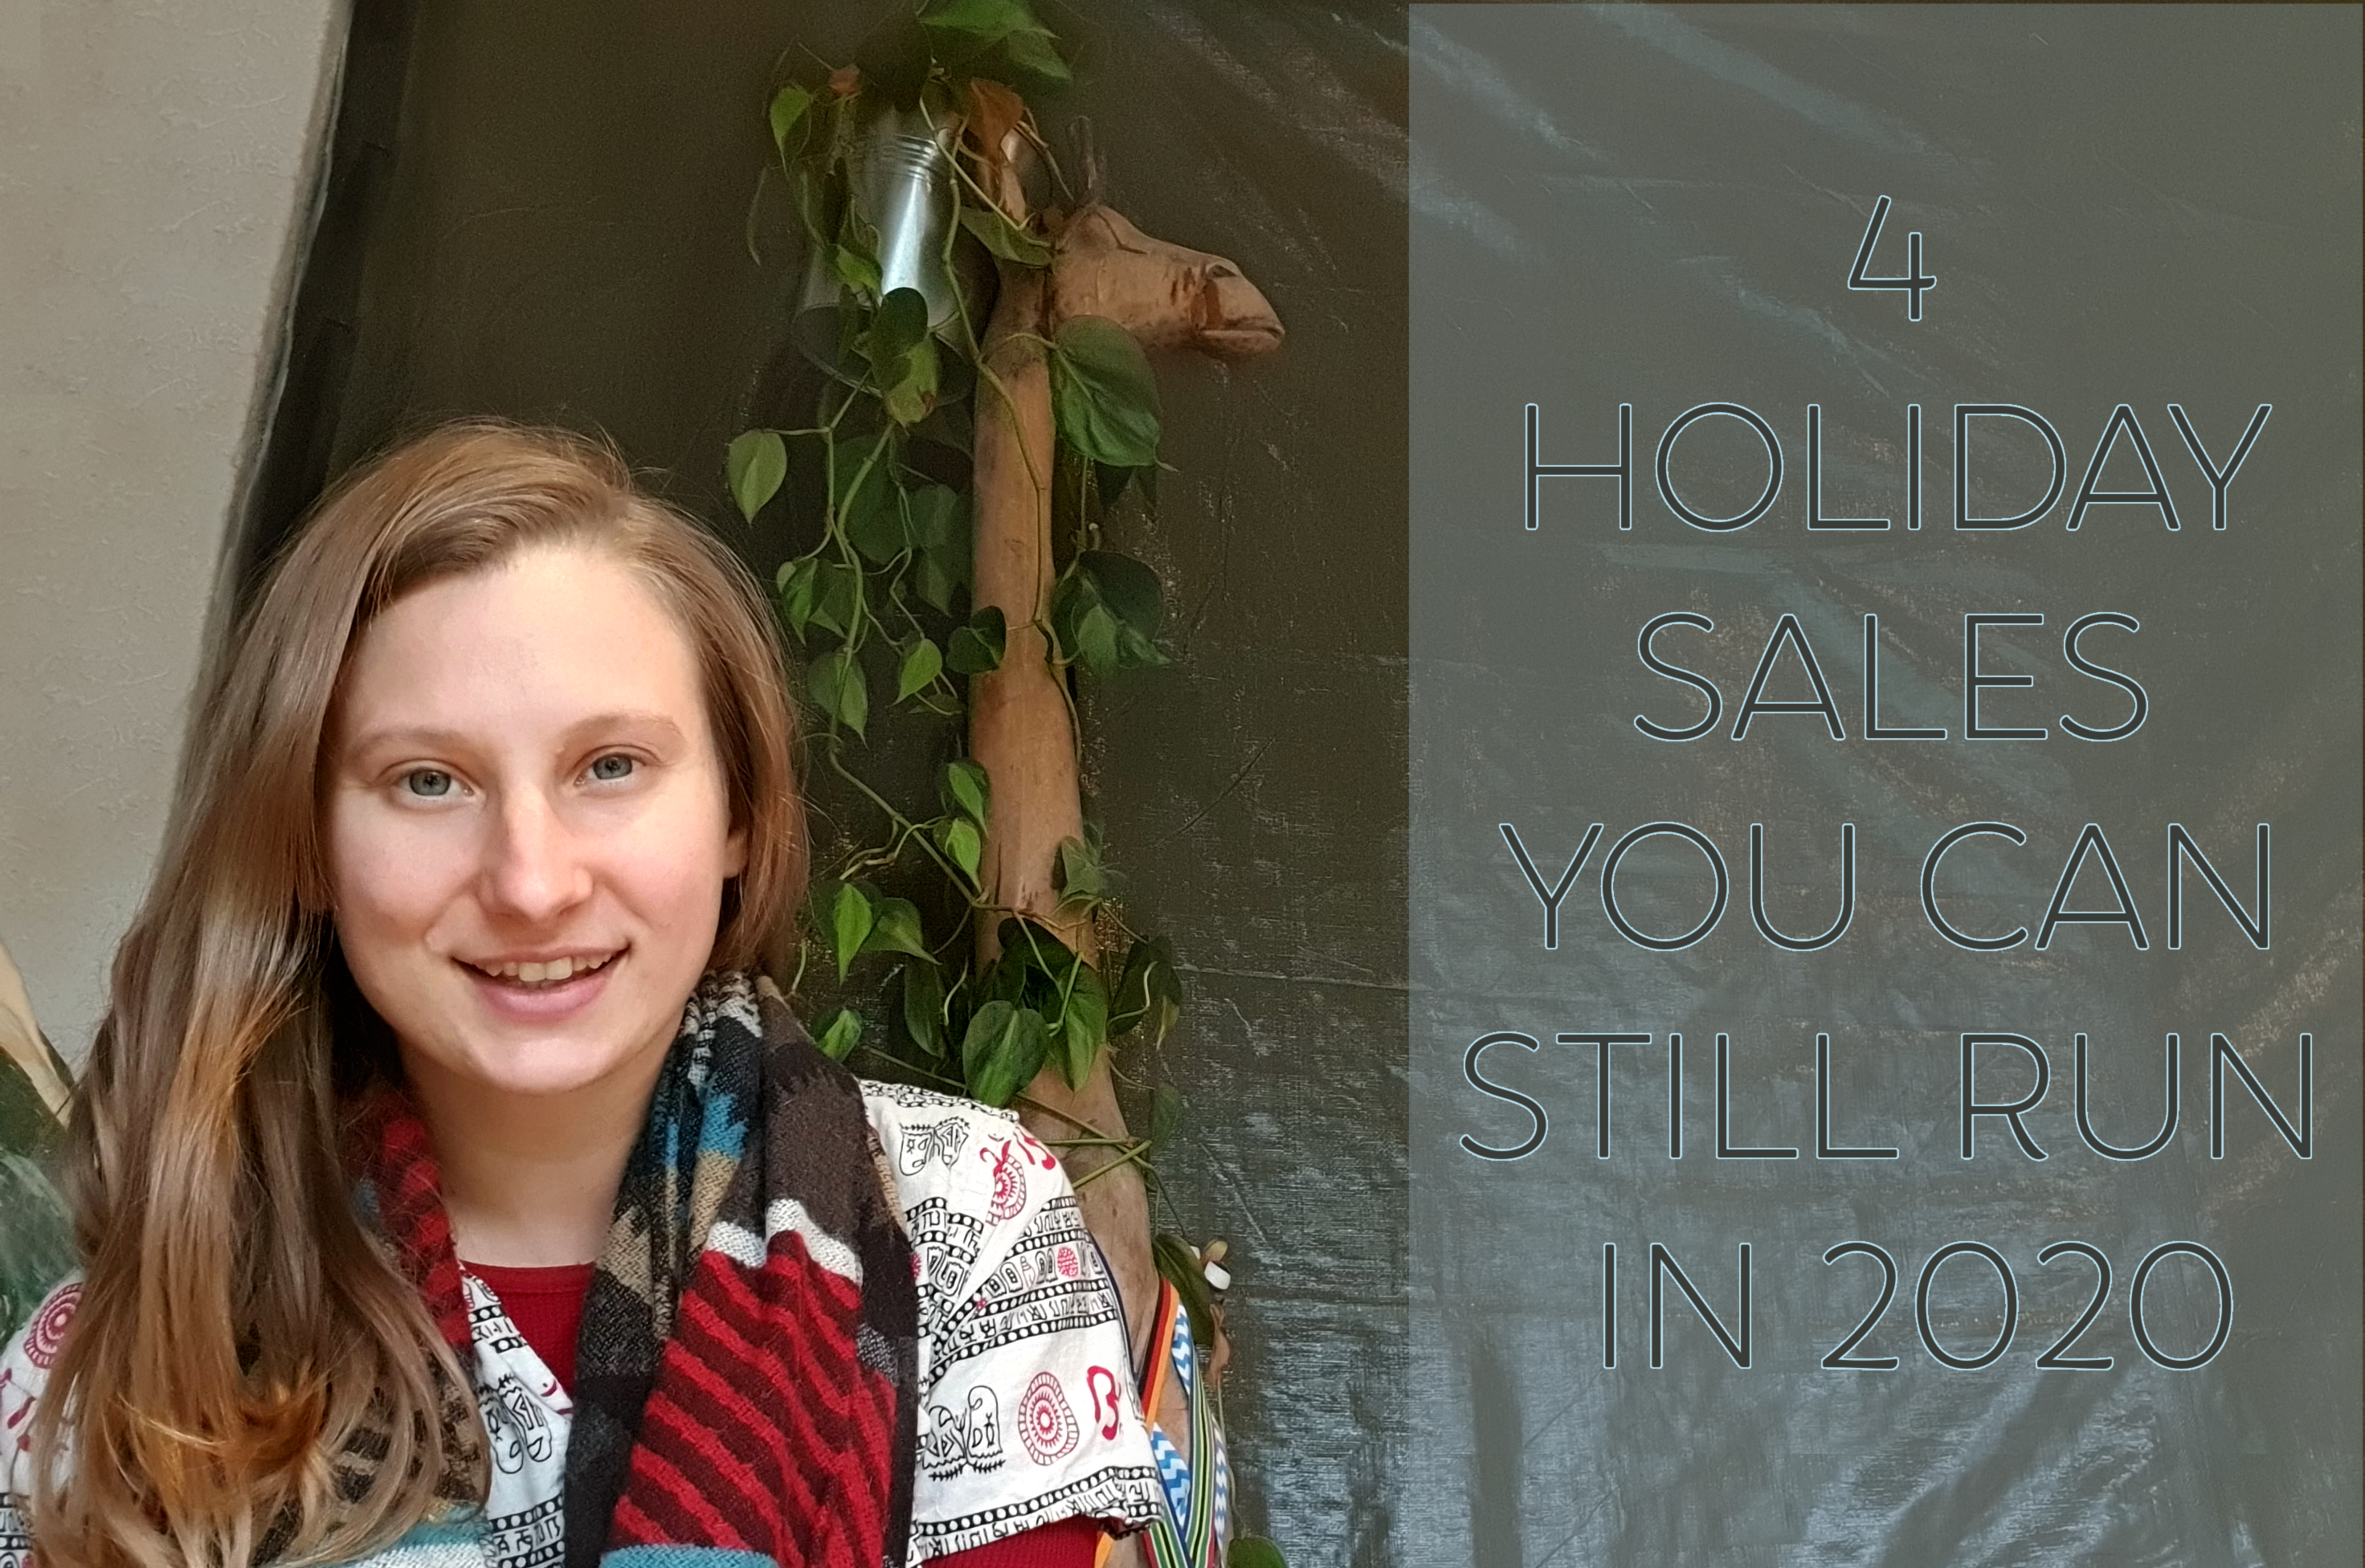 Holiday Sales You Can Still Do in 2020